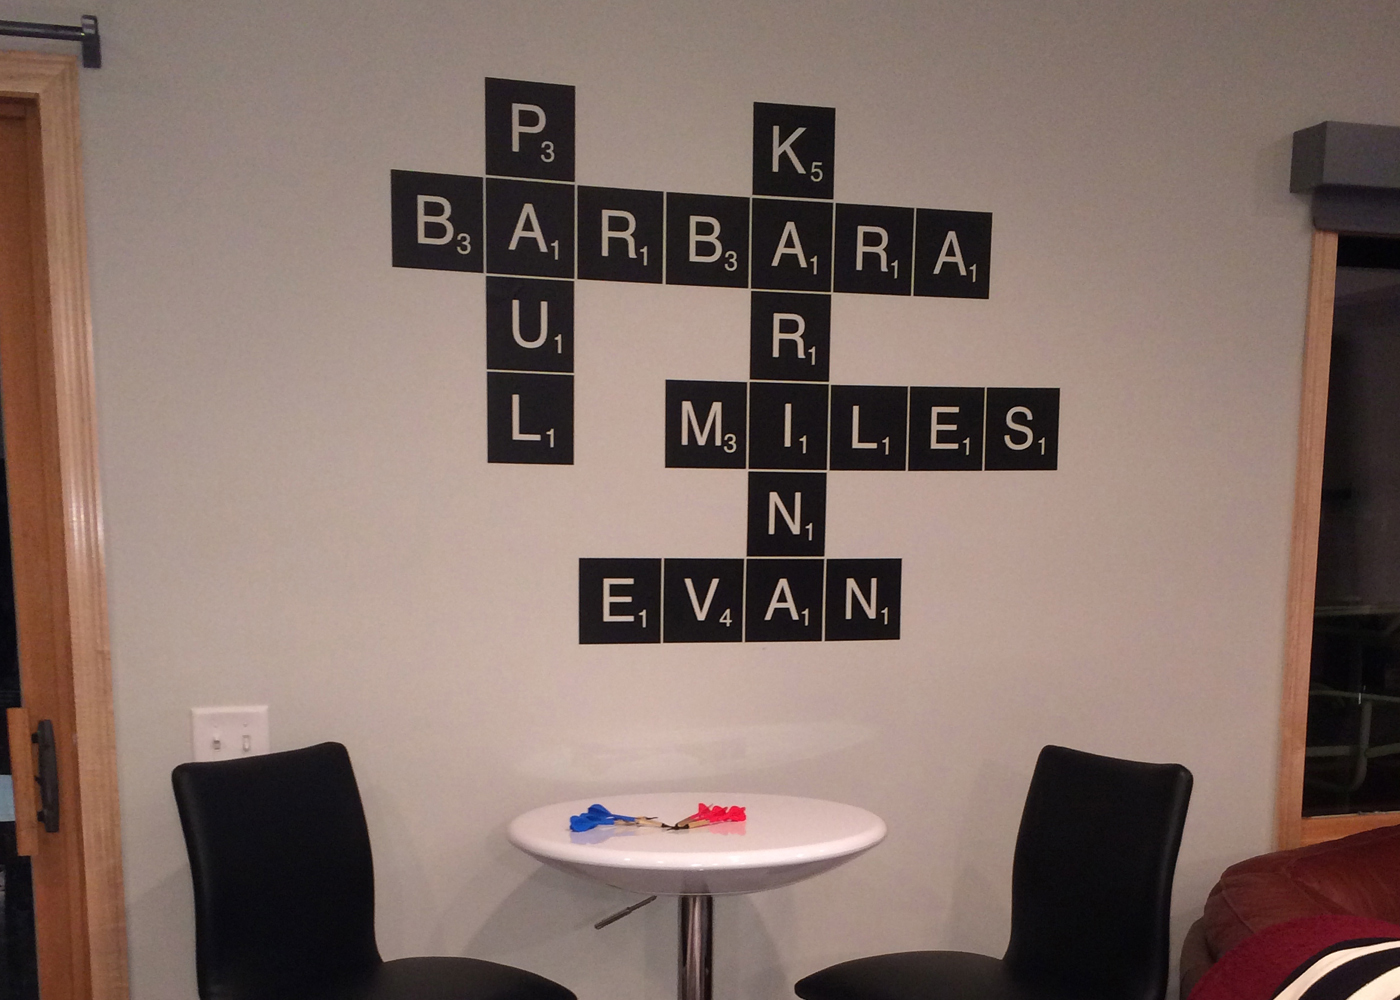 scrabble-tile-vinyl-wall-decals-personalized.jpg